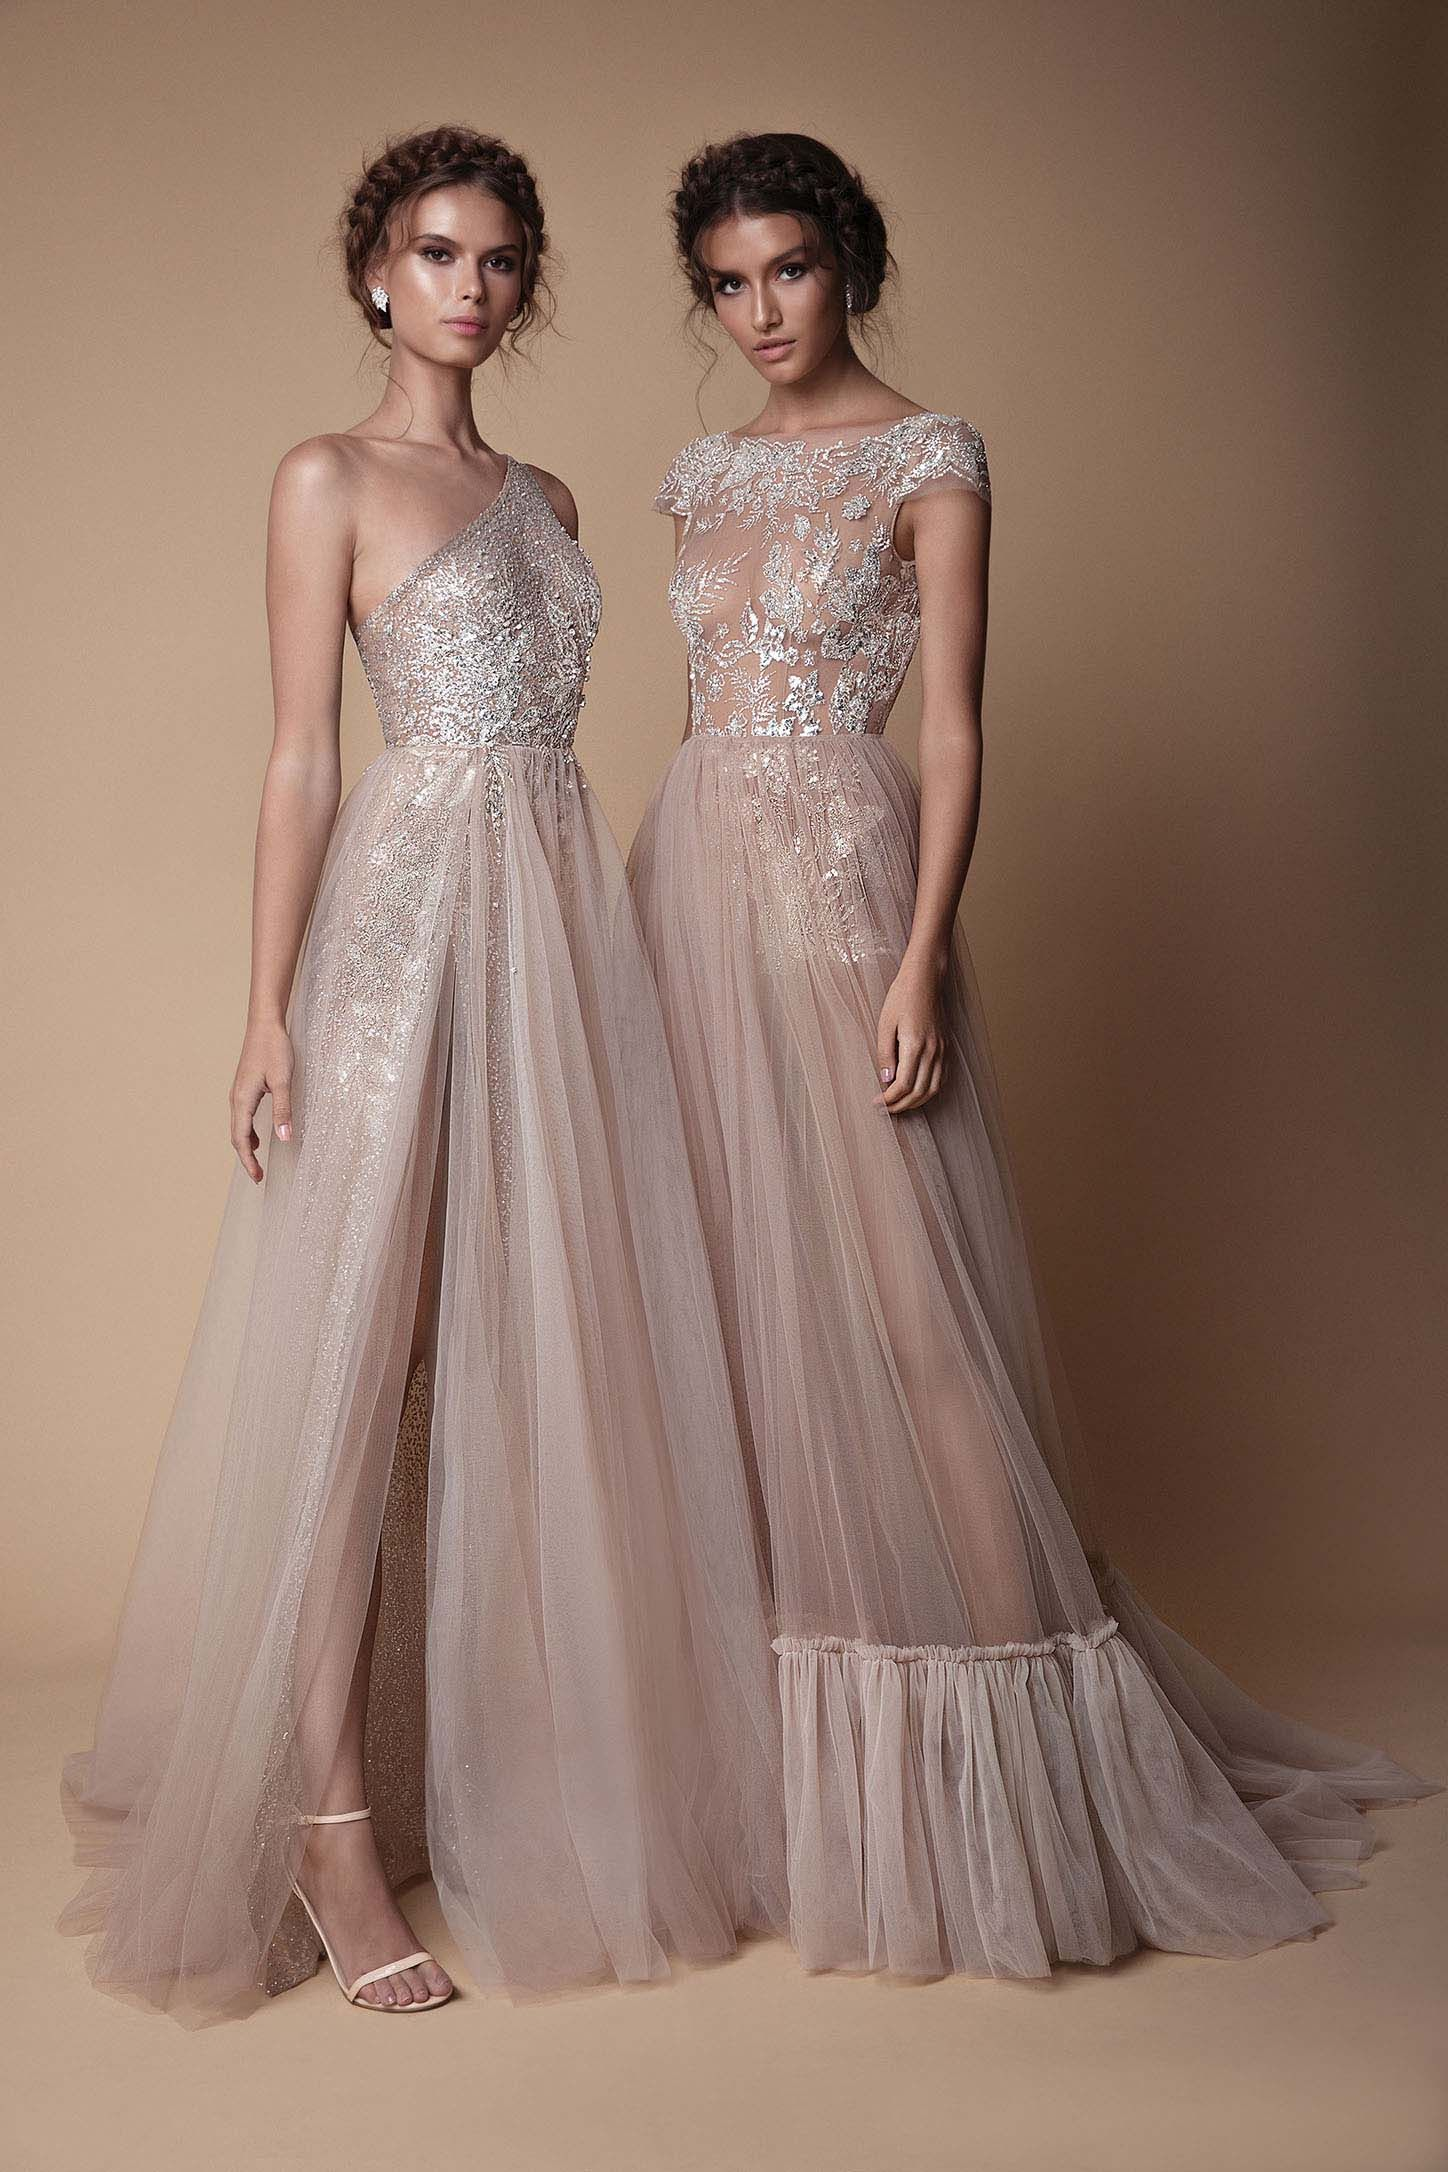 Fw berta fashion pinterest prom dress collection and